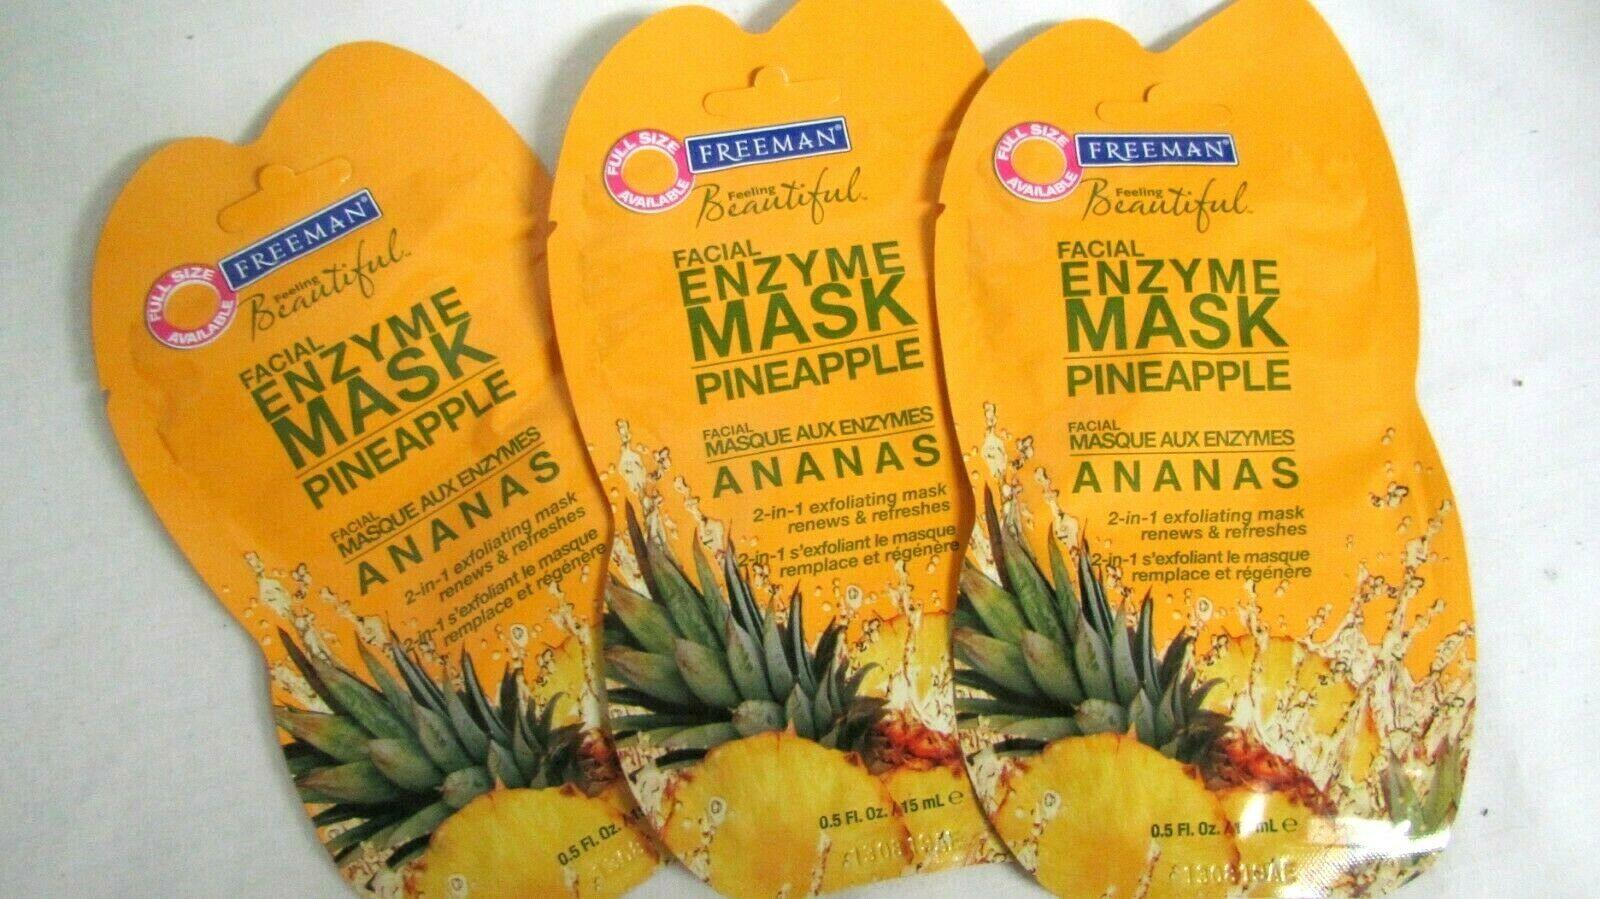 Freeman Facial Enzyme Mask Pineapple 3 packs NEW